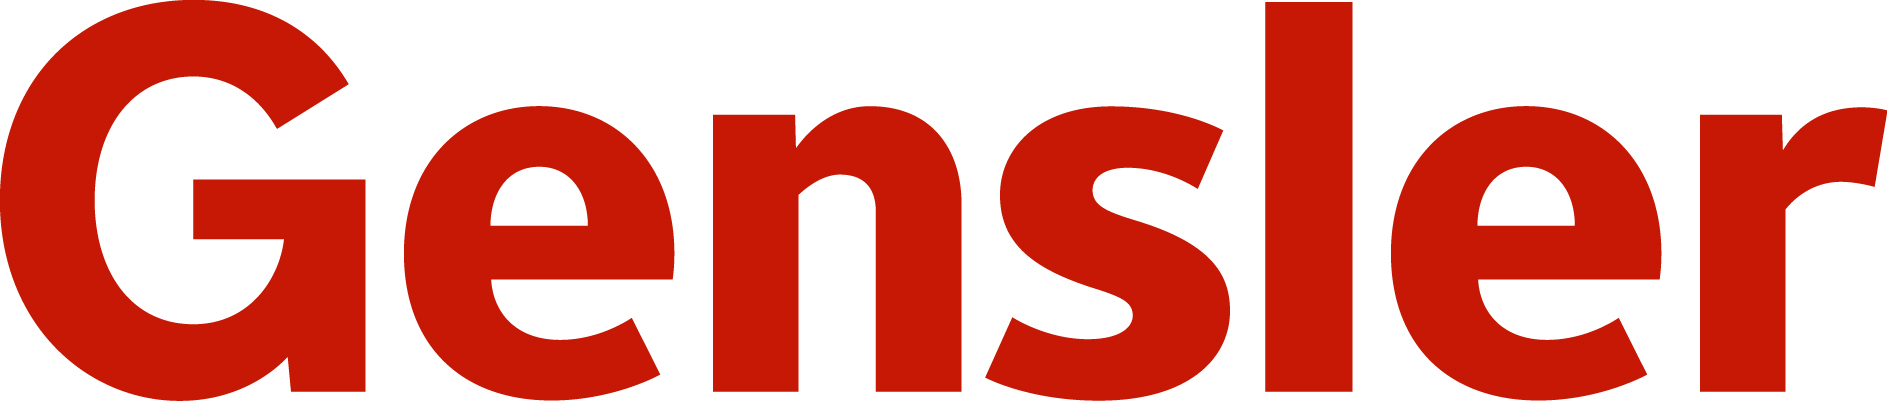 Gensler_logo_RED2